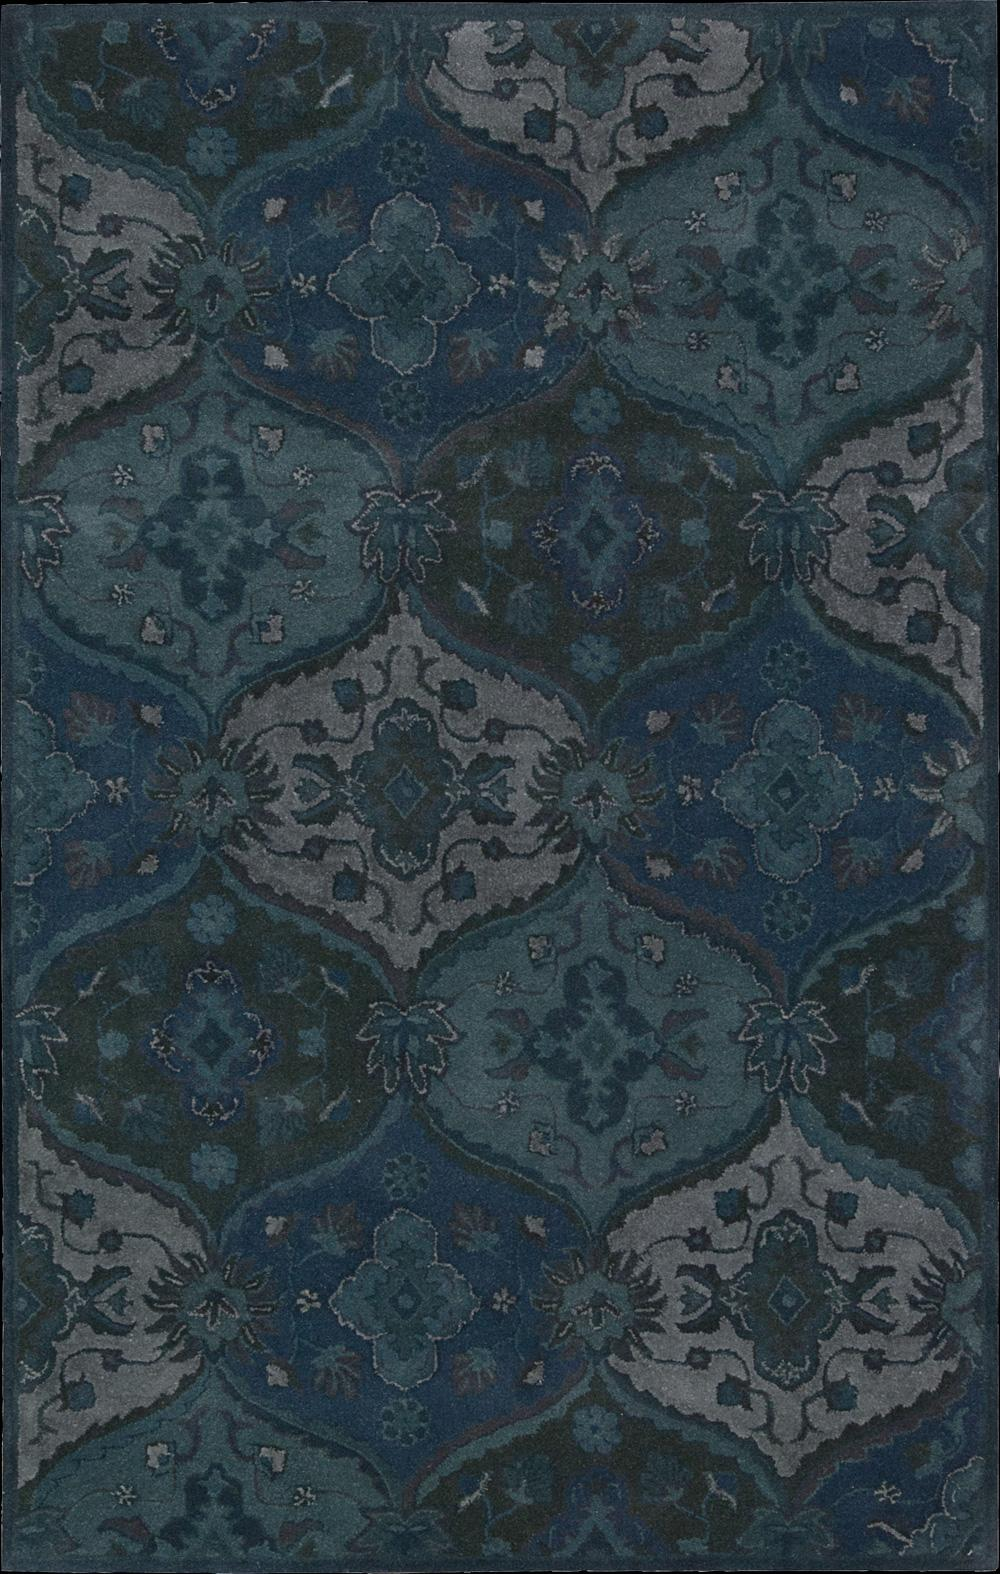 Nourison India House Area Rug 5' x 8' - Item Number: 16189